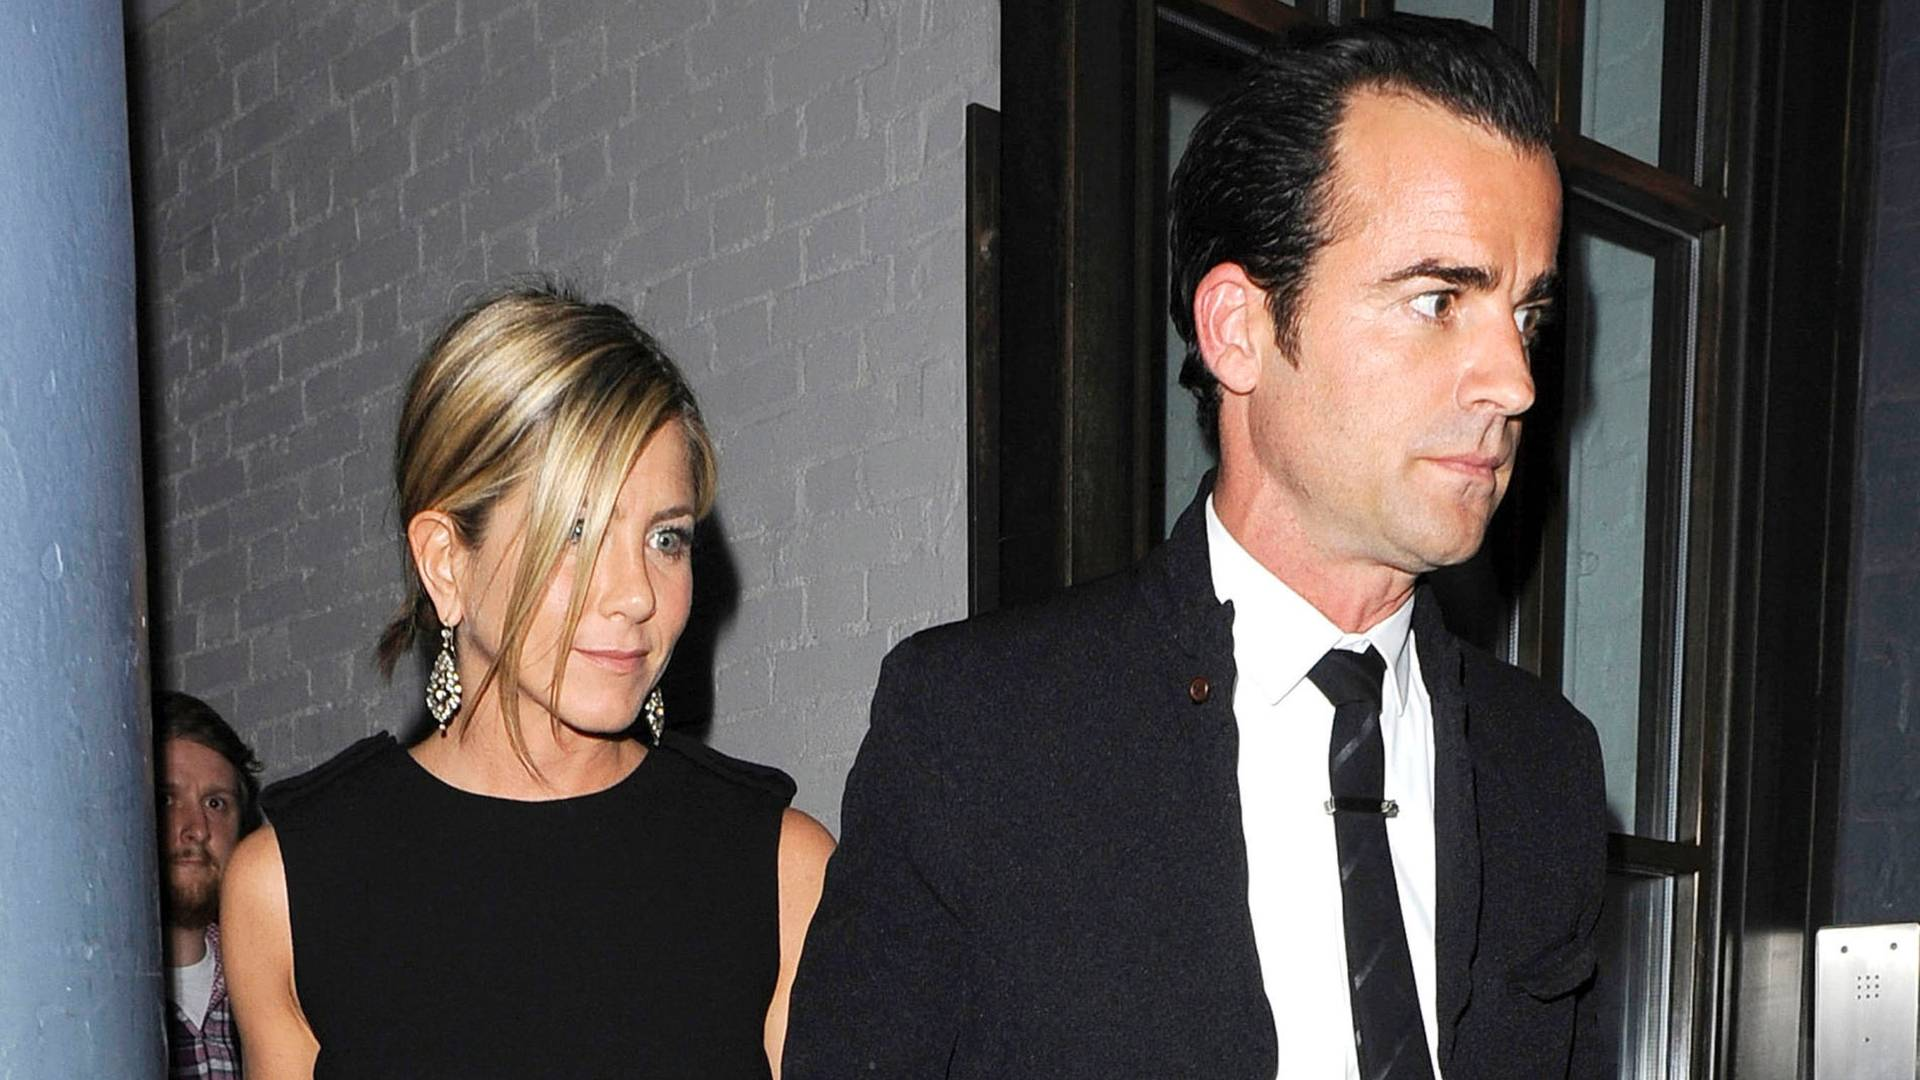 Jennifer Aniston e Justin Theroux saem de mos dadas de um restaurante em Londres (21/7/2011)